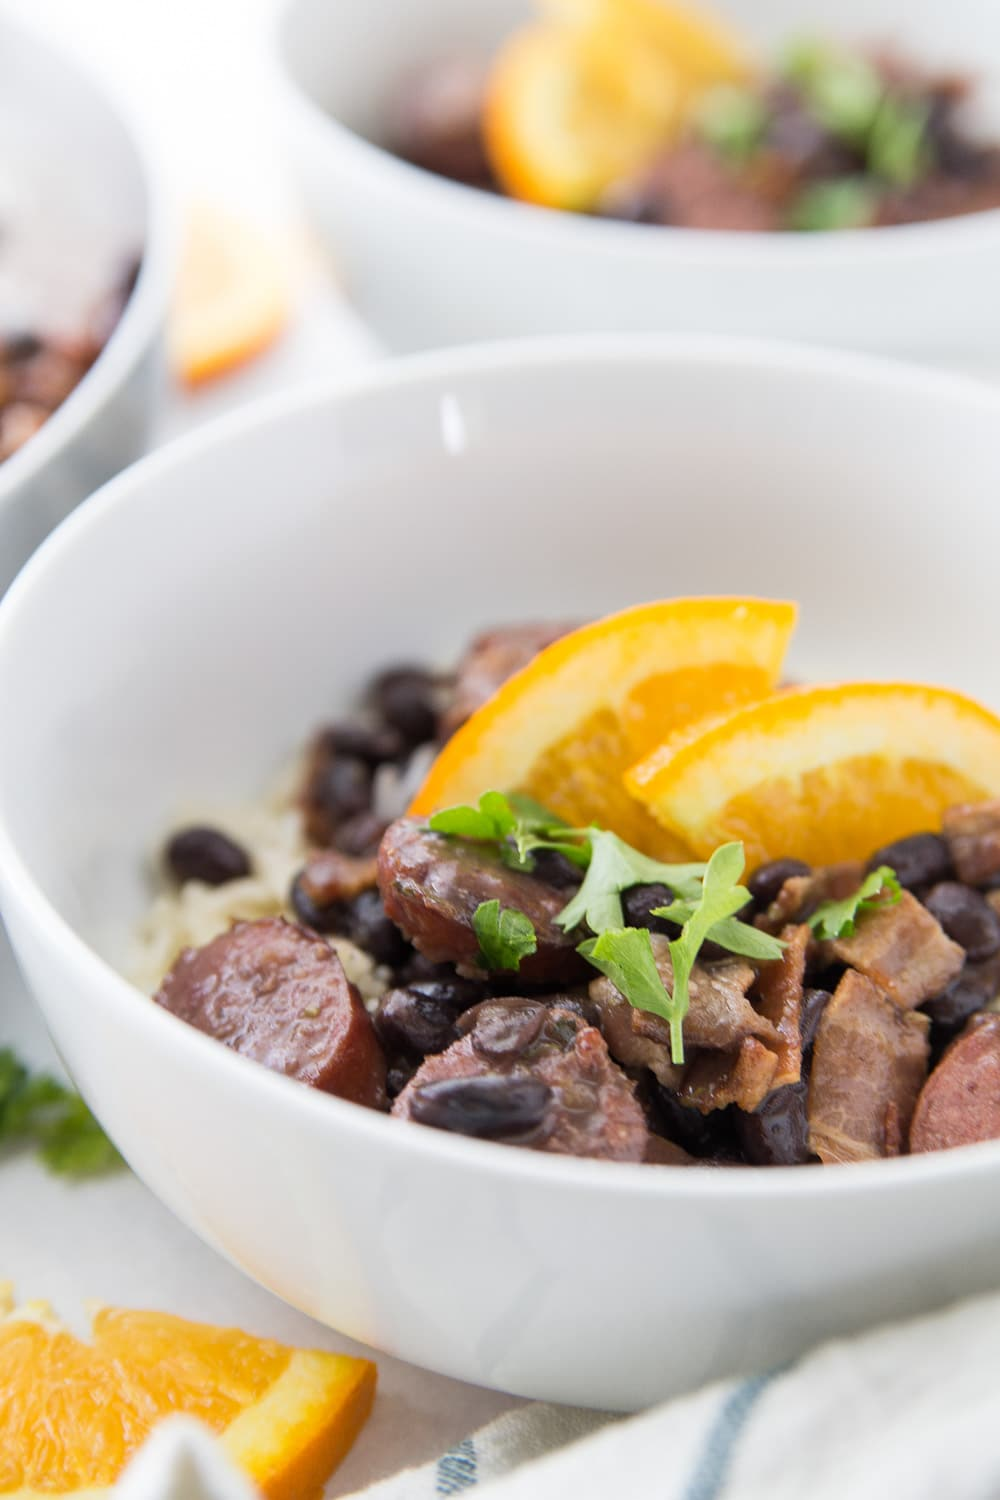 Bowl of feijoada with oranges